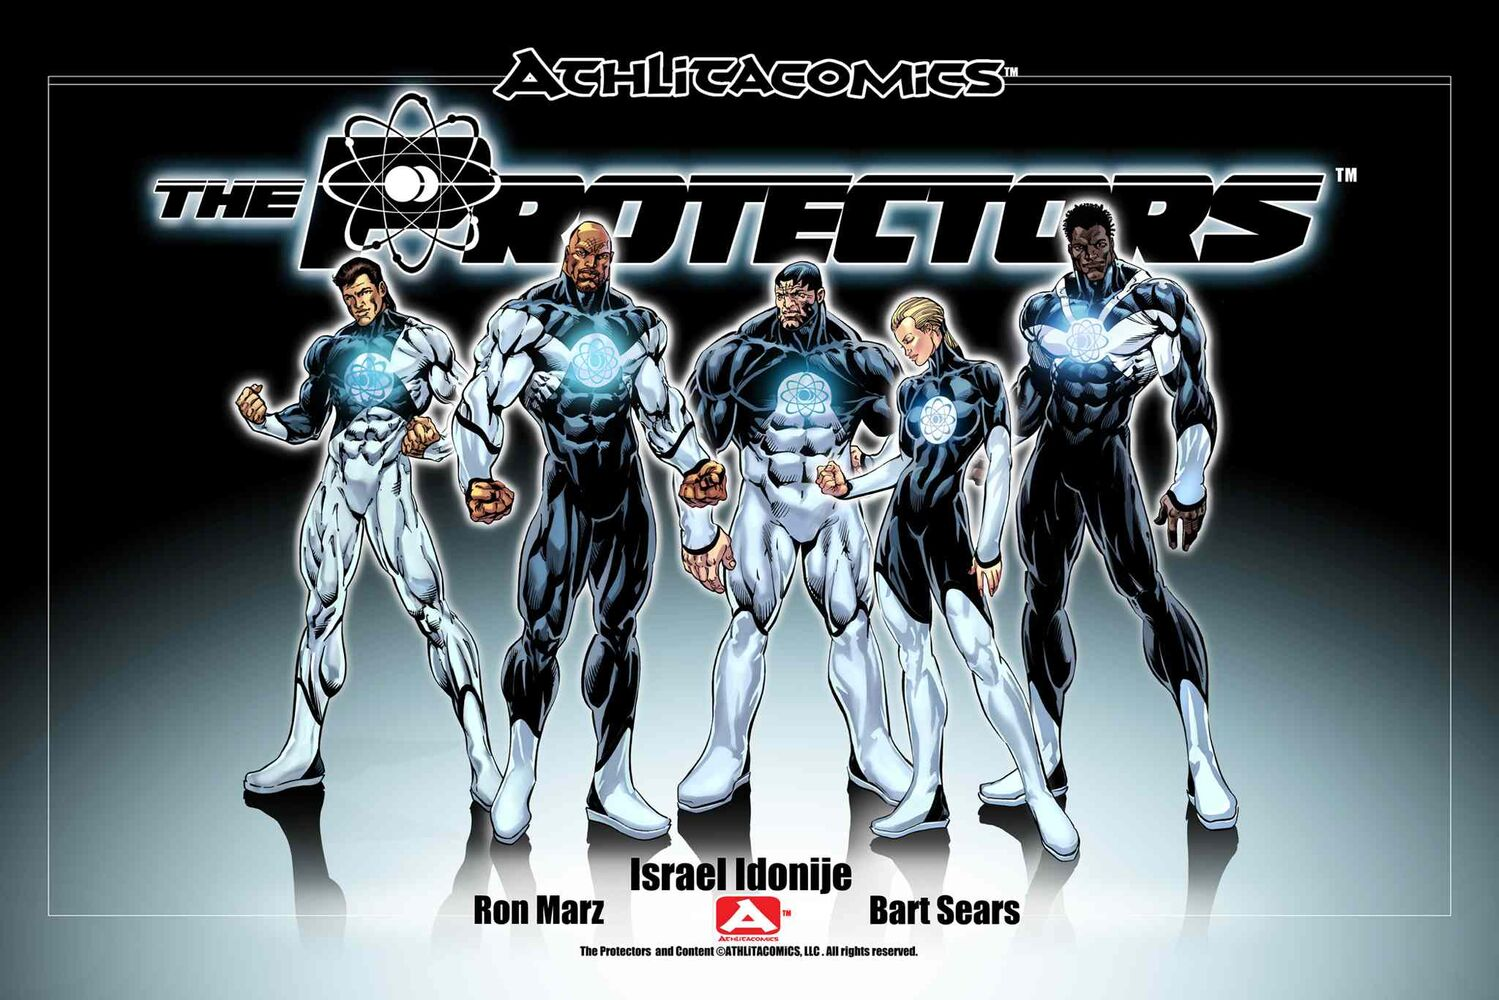 The Protectors chronicles a group of athletes who find out they also have superpowers and set about trying to save the world. (Courtesy of Athlitacomics)